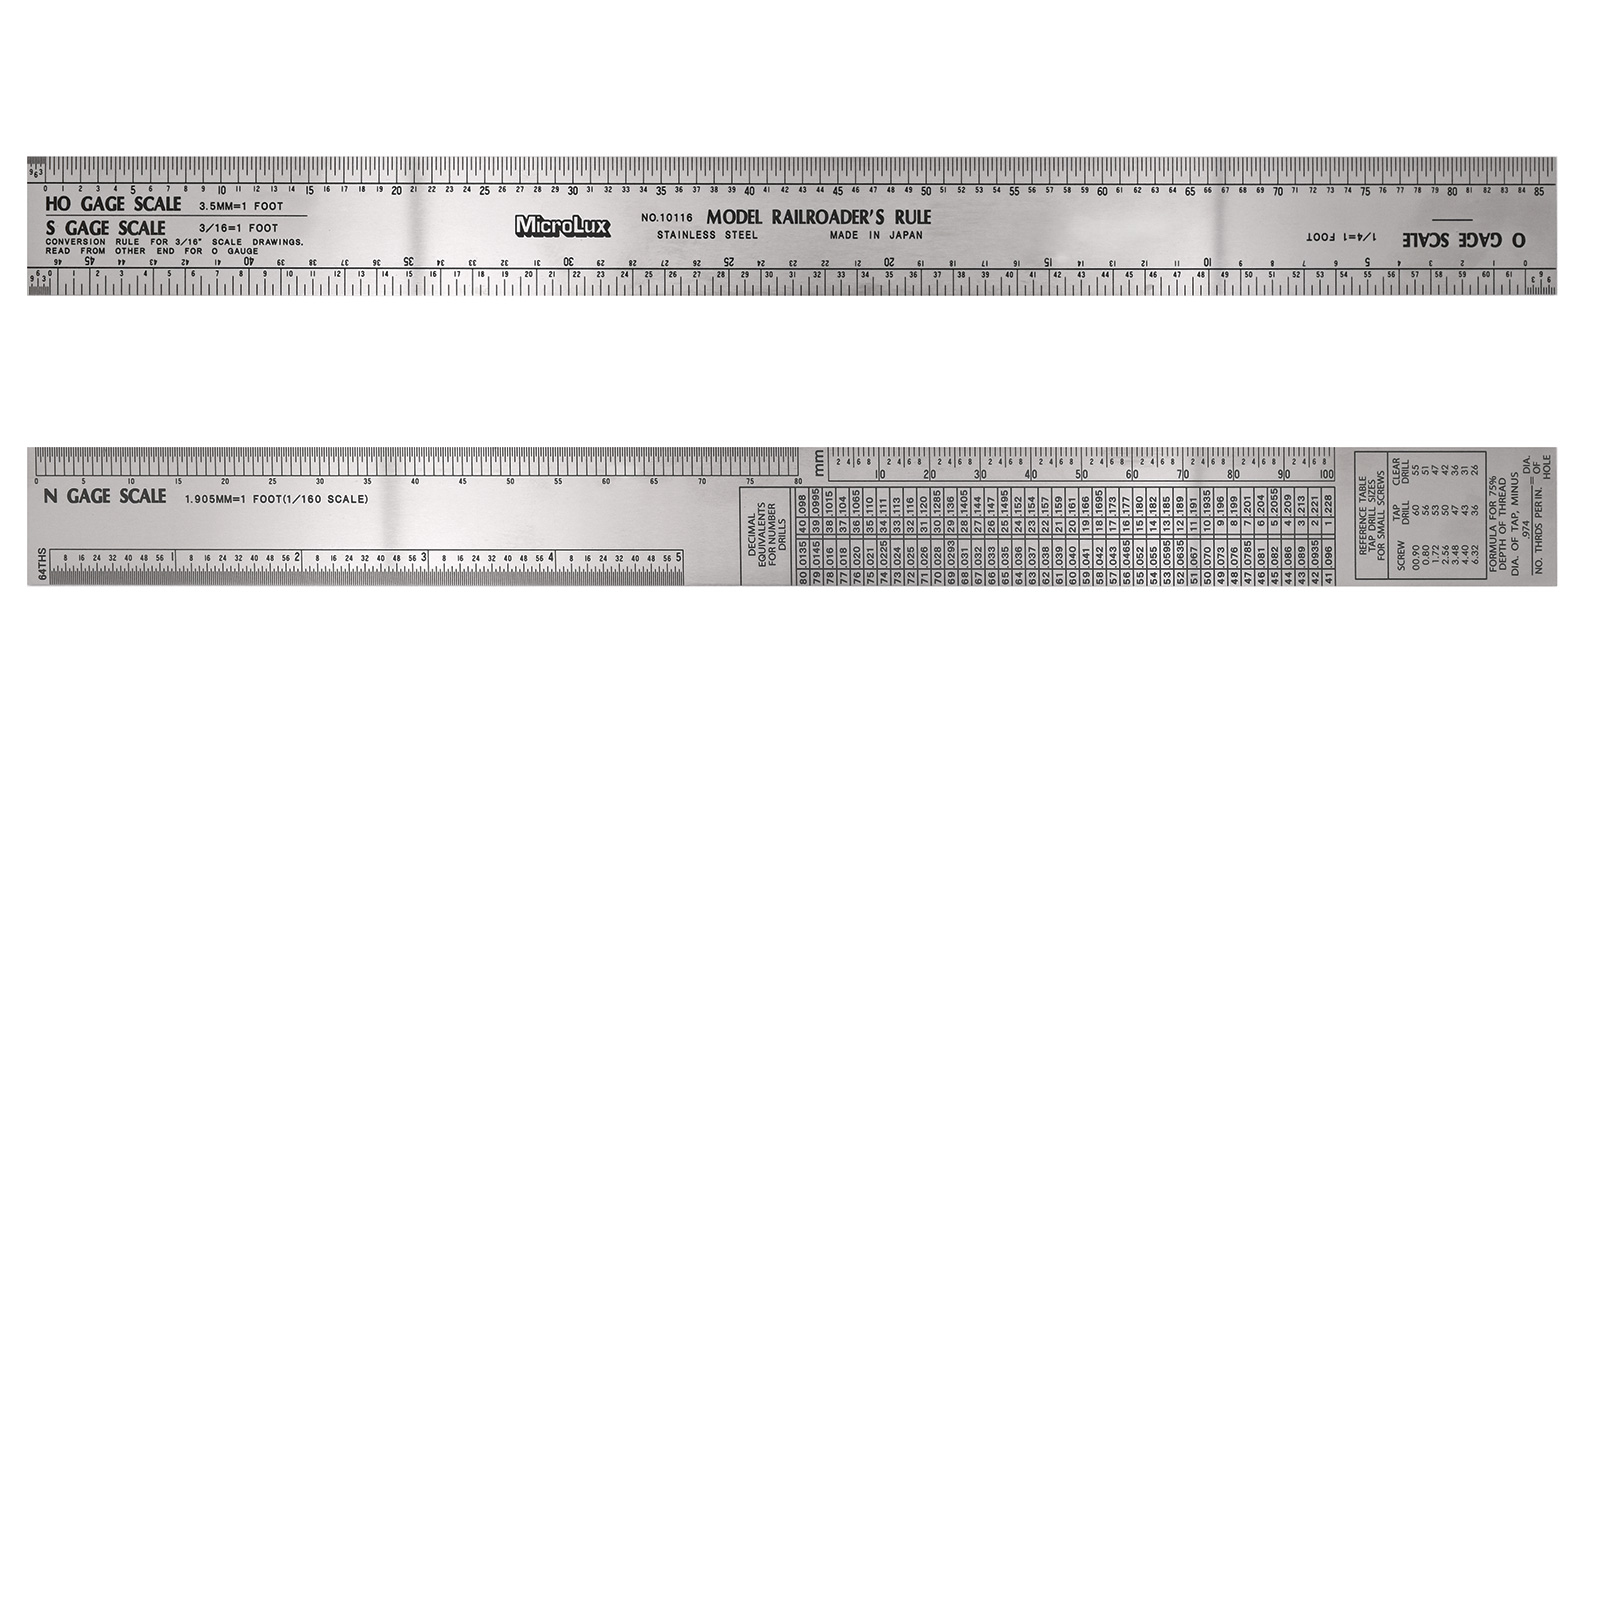 12 Inch Stainless Steel Model Railroader's Ruler (For Ho, O